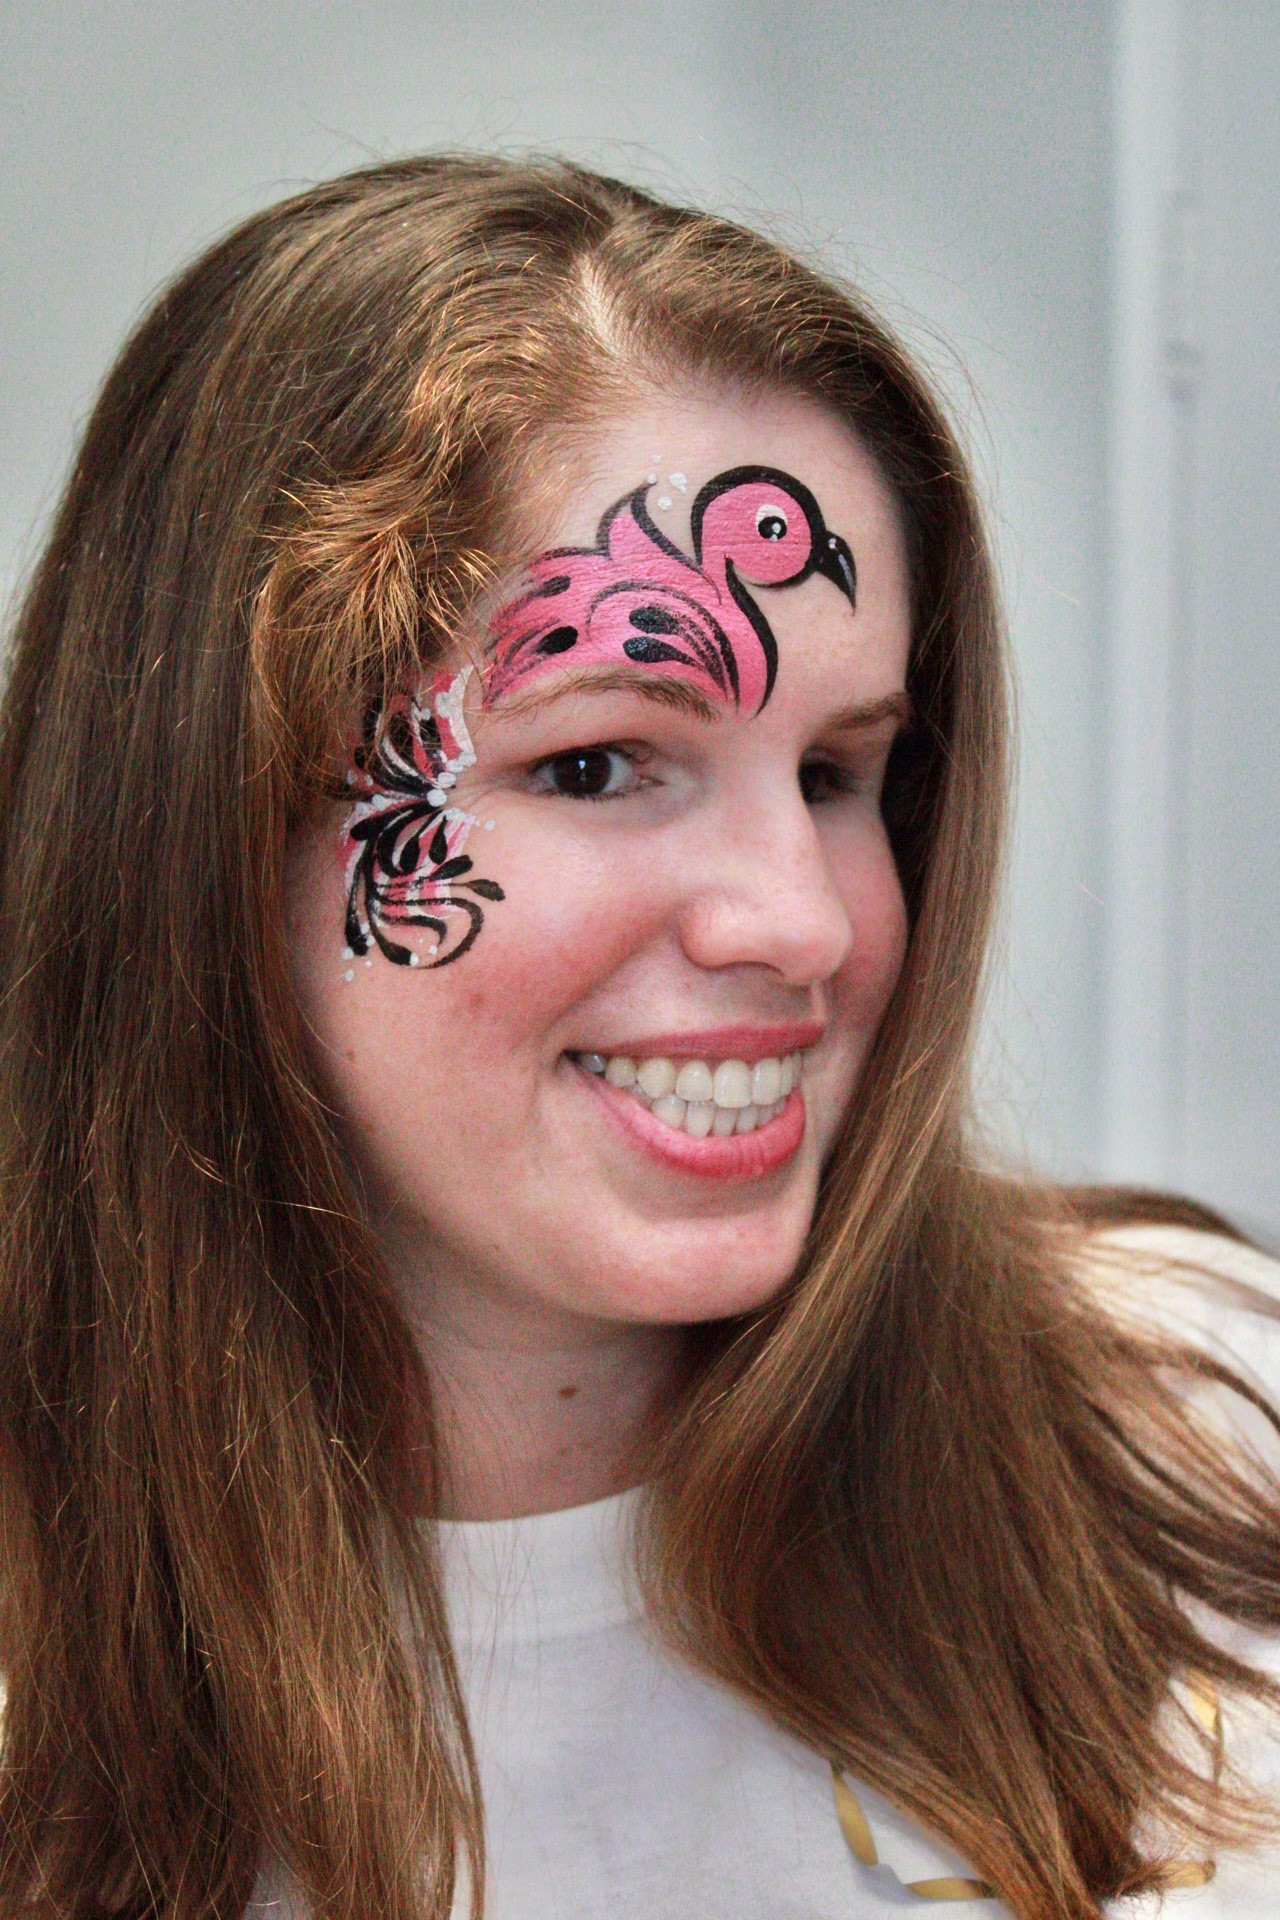 A young woman features a painted pink, black, and white flamingo over her right eye, and is flashing a bright, beautiful smile.